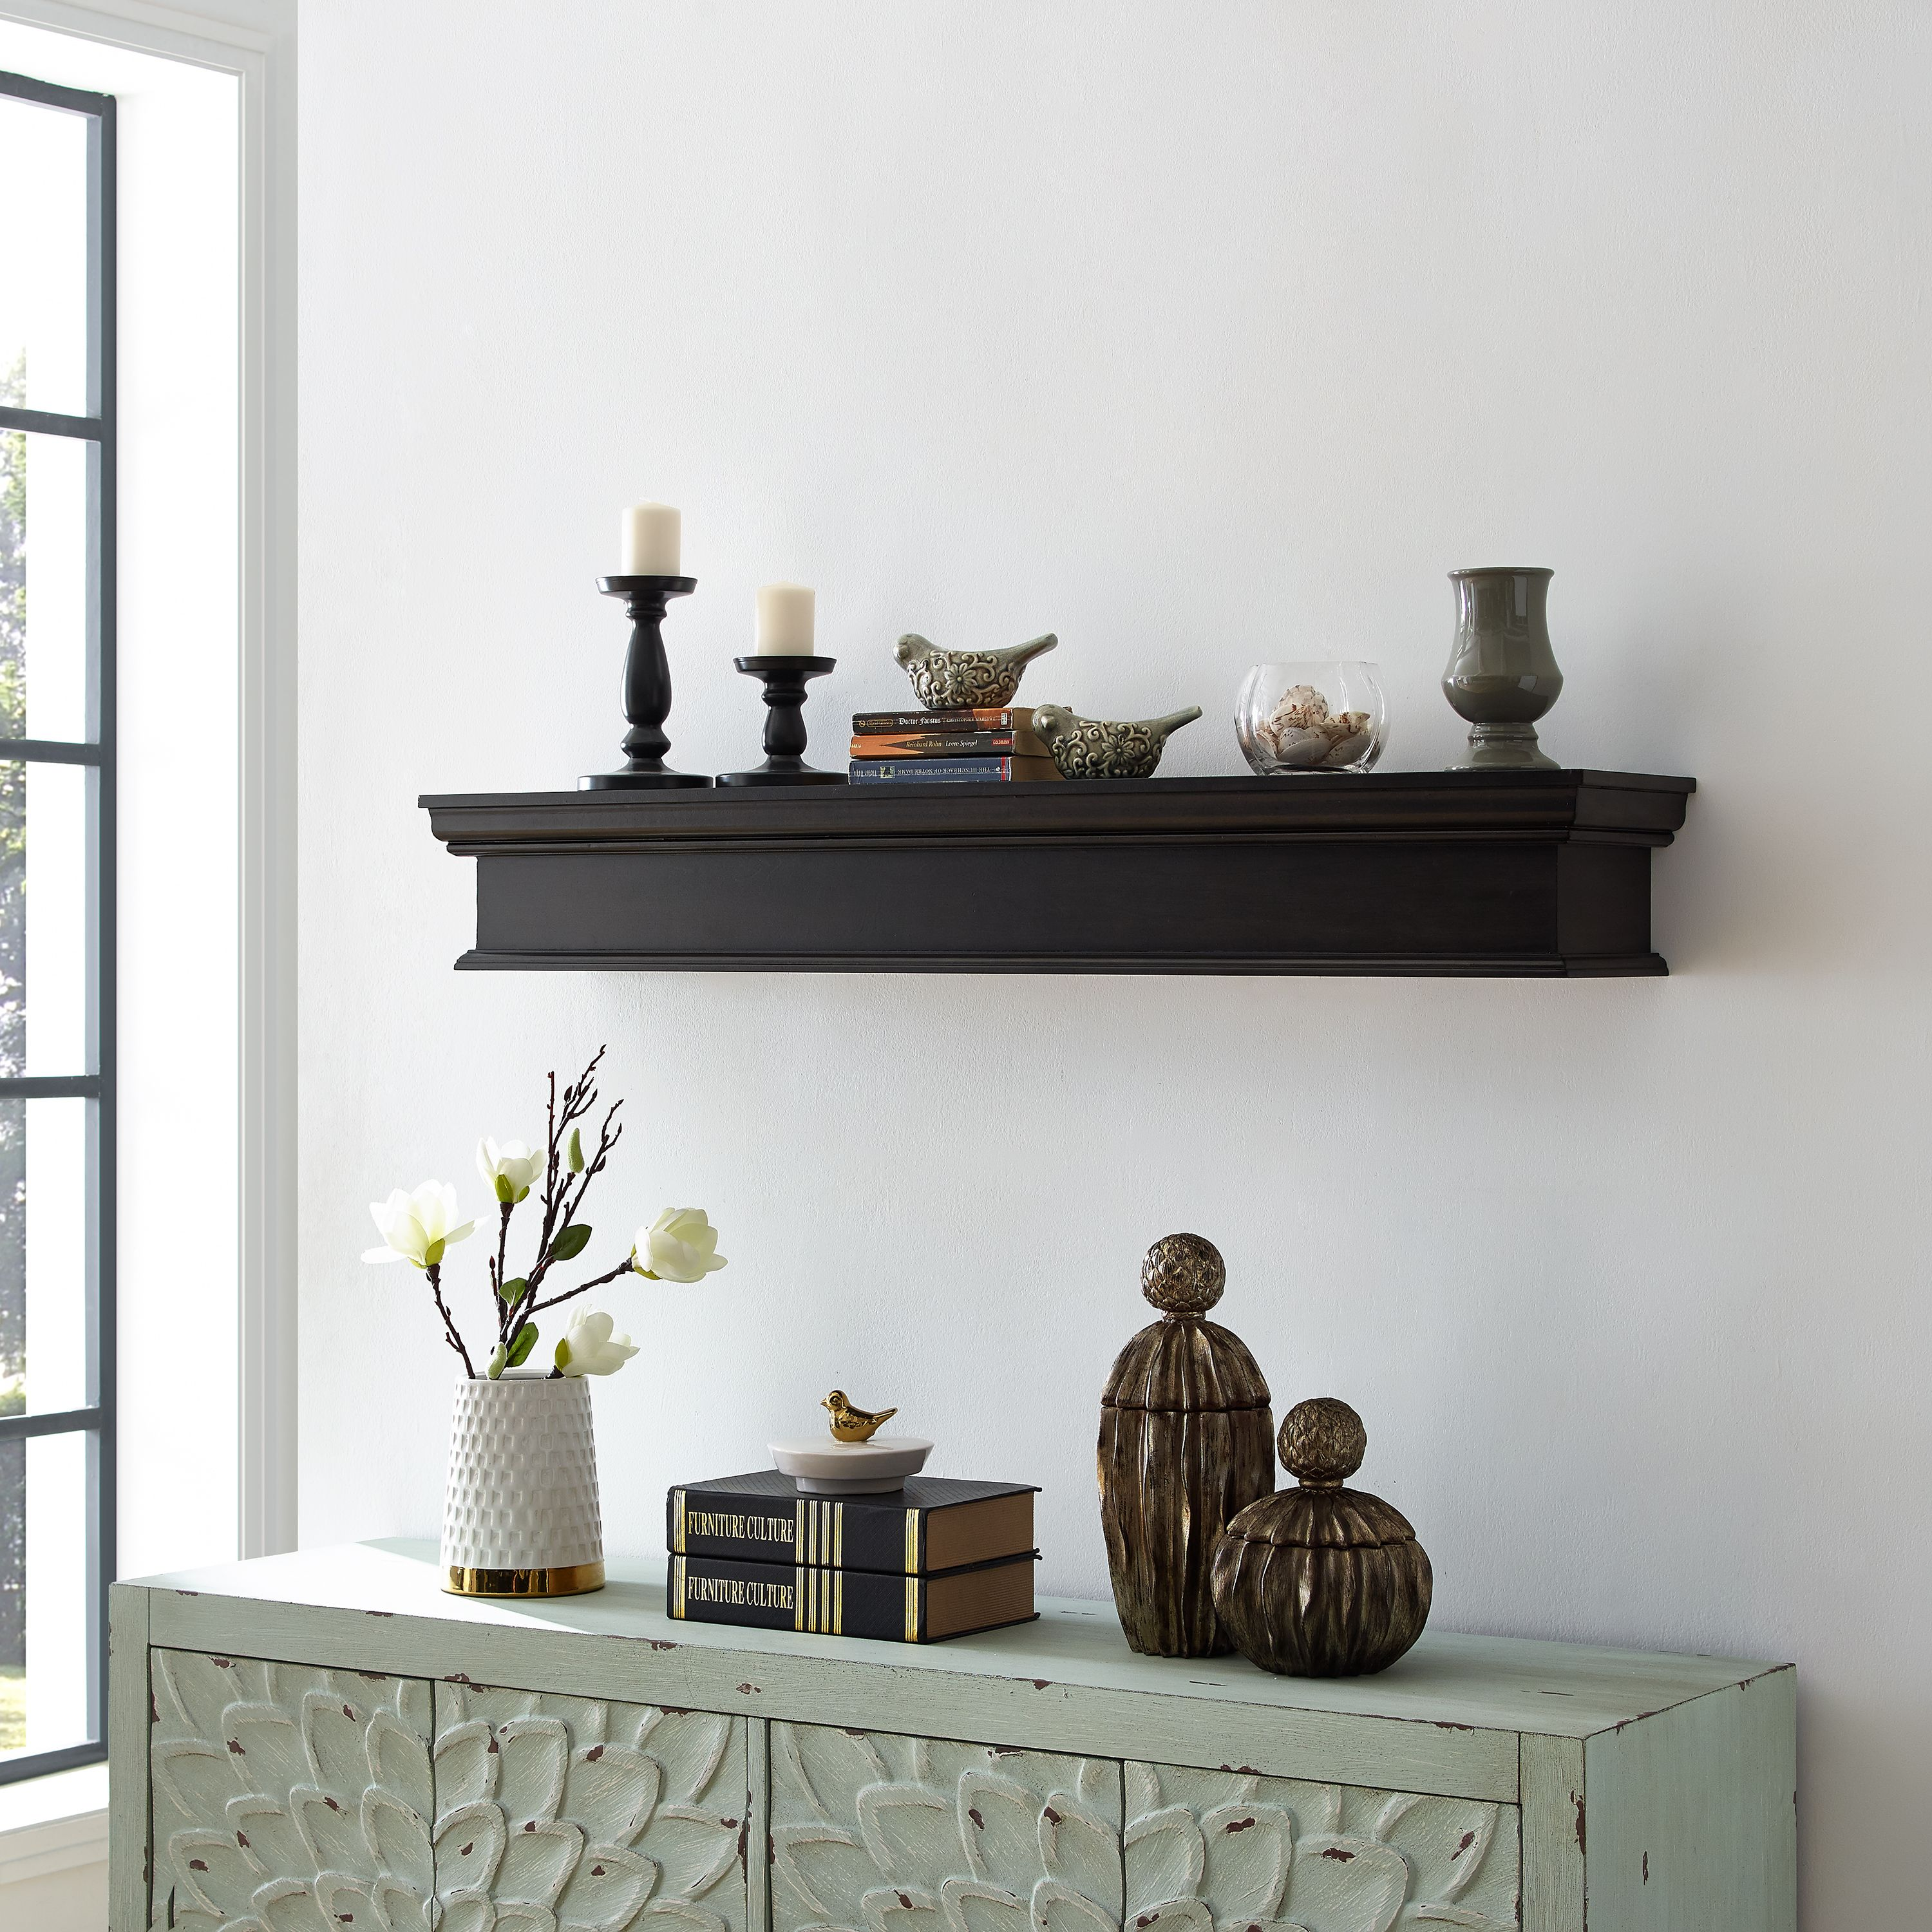 Adom Fireplace Mantel Shelf, Traditional, Smoked Ash